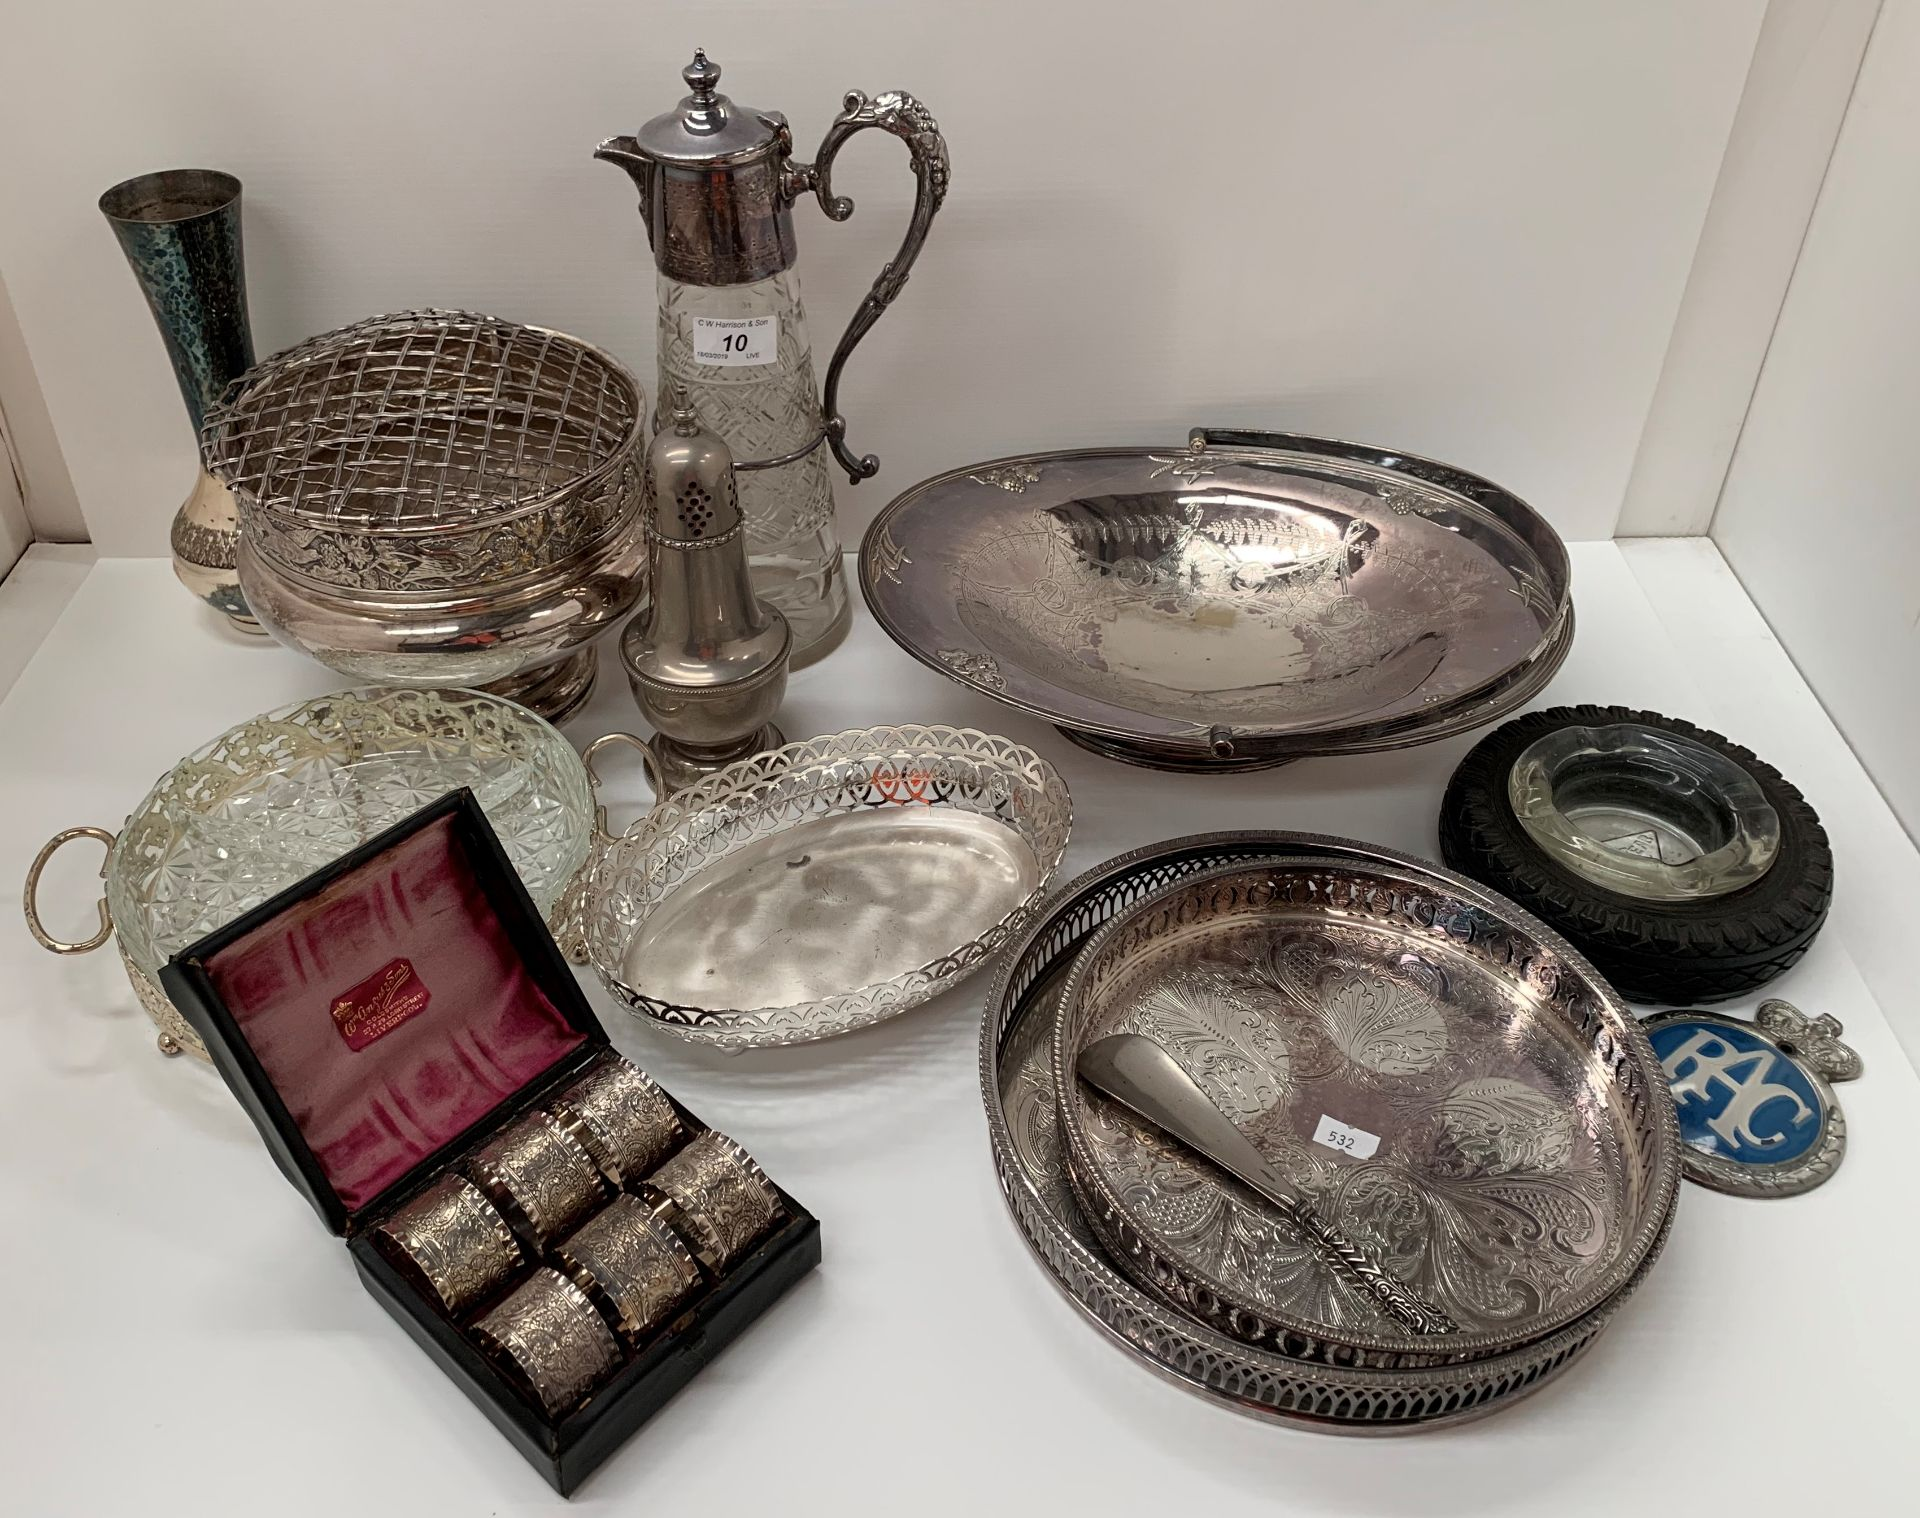 Lot 10 - Plated claret jug, a set of six plated napkin rings, plated rose bowl, trays, etc.